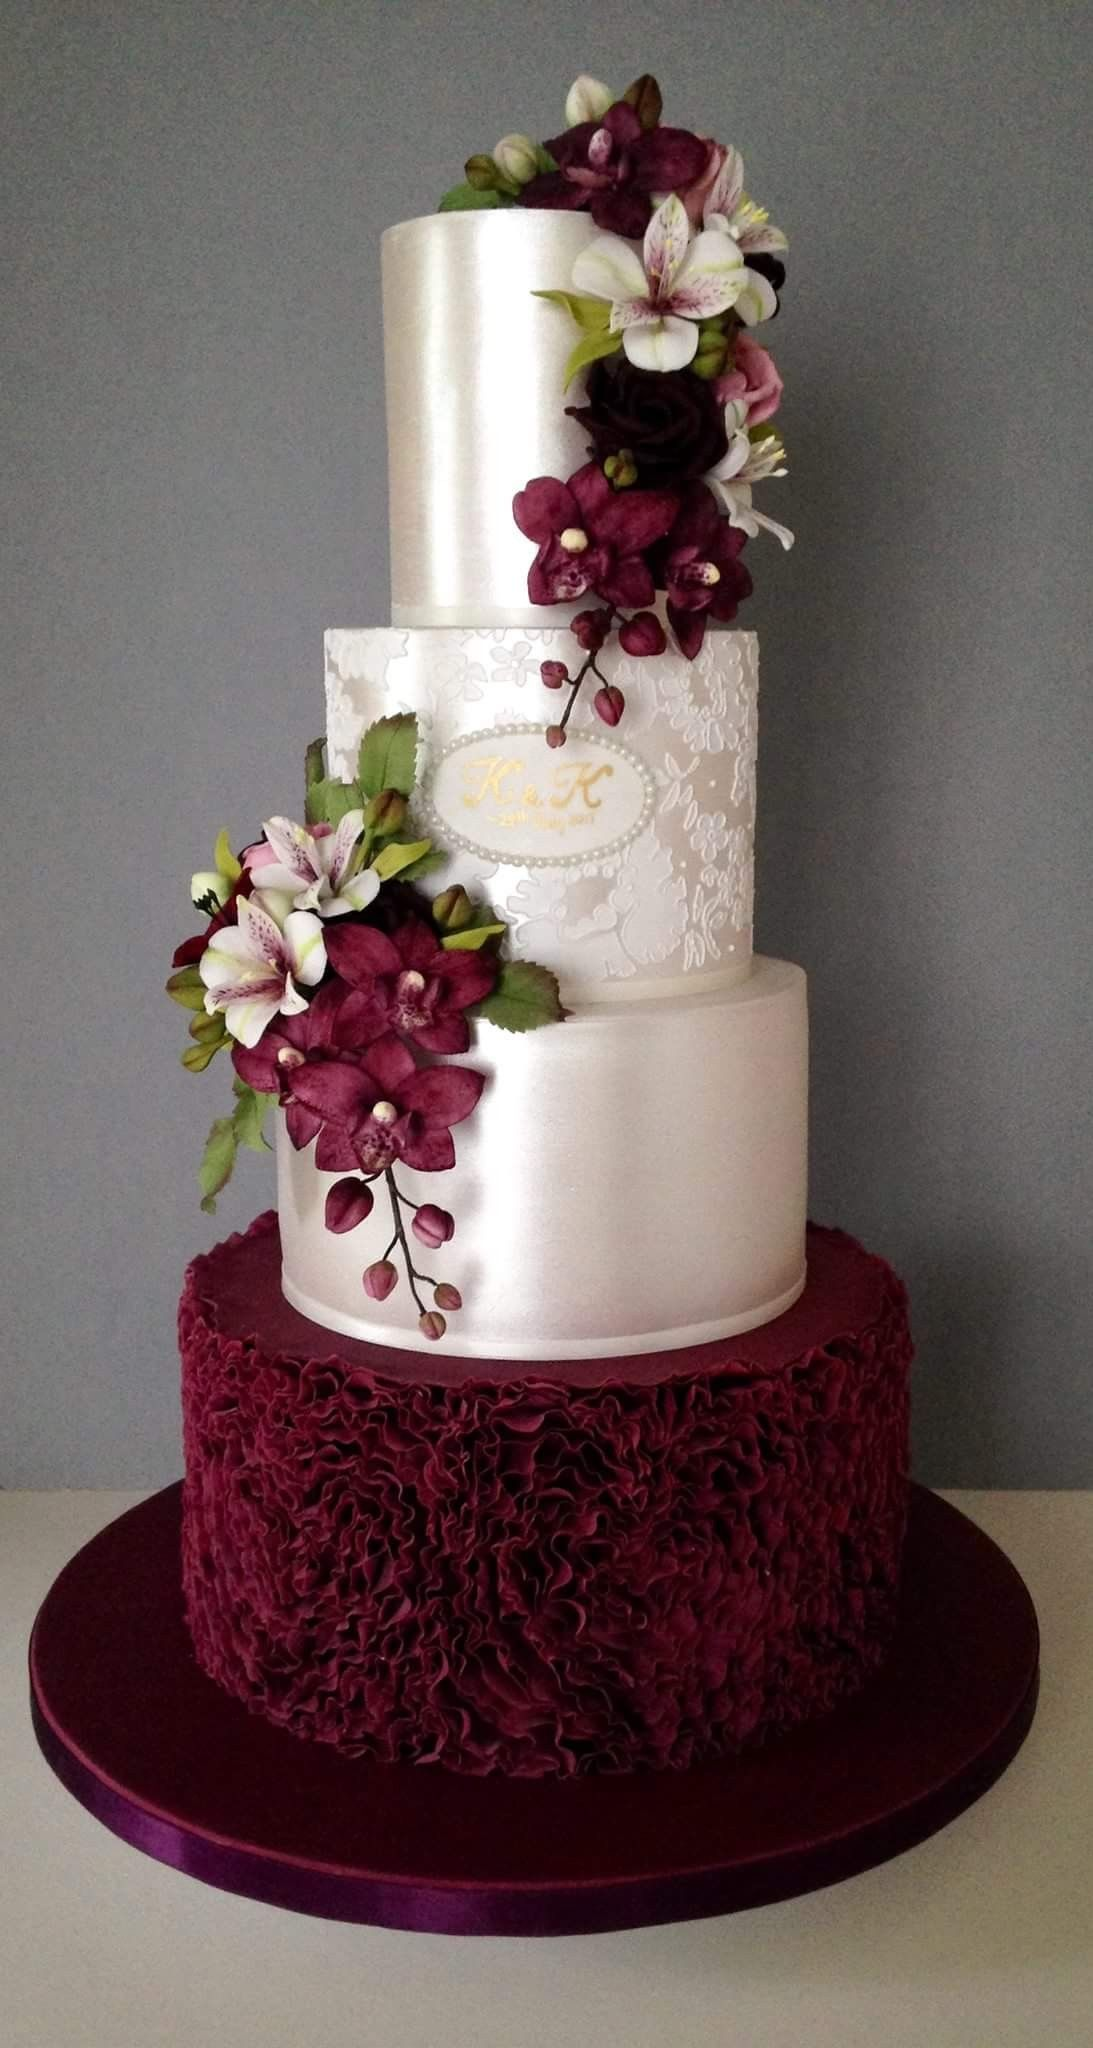 Pin by patricia wade shaver on simply exquisite cakes wsilver or